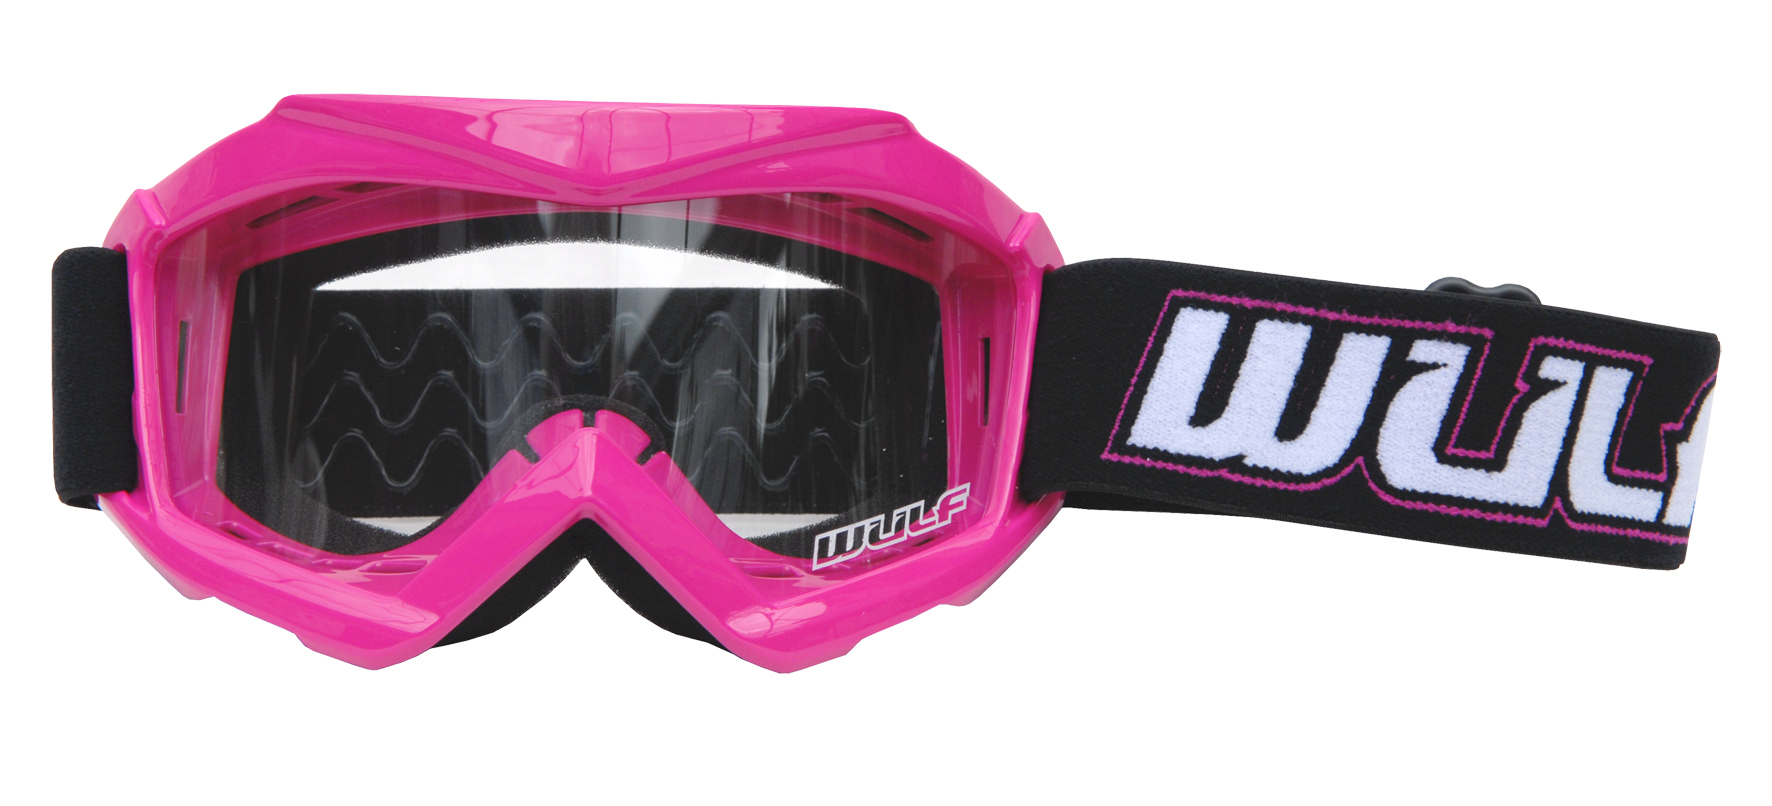 Wulfsport Cub Tech Goggles for MX Enduro - Pink